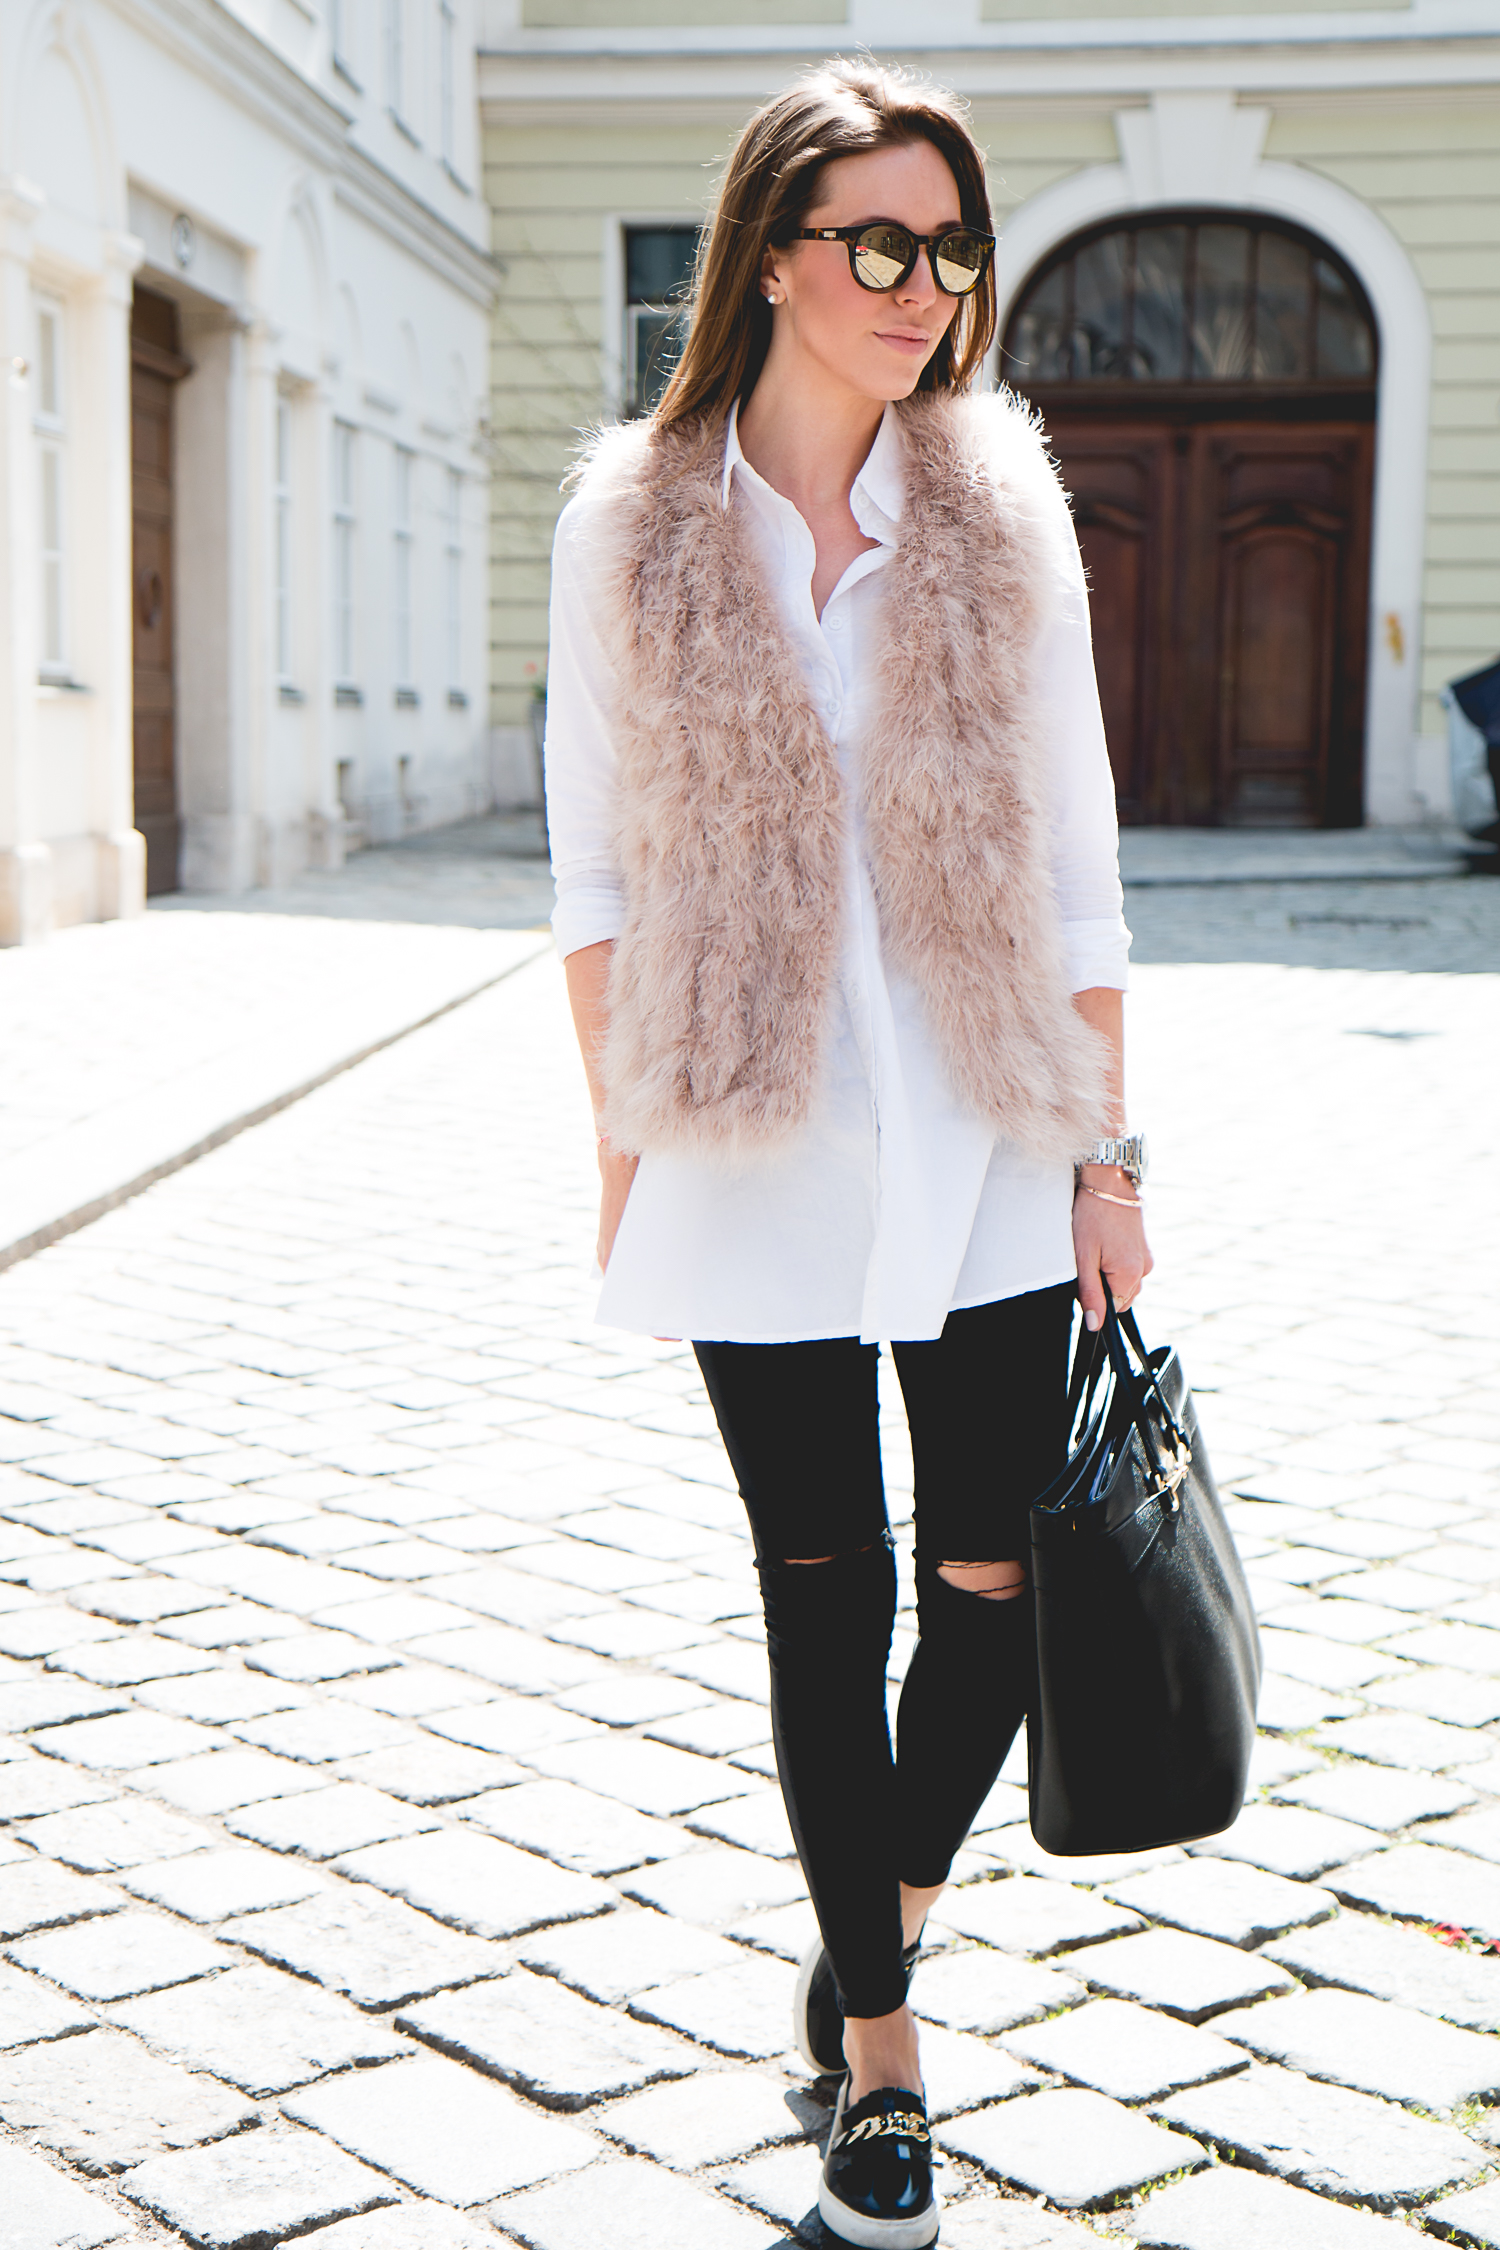 Fluffy-Vest-Gucci-Bag-6